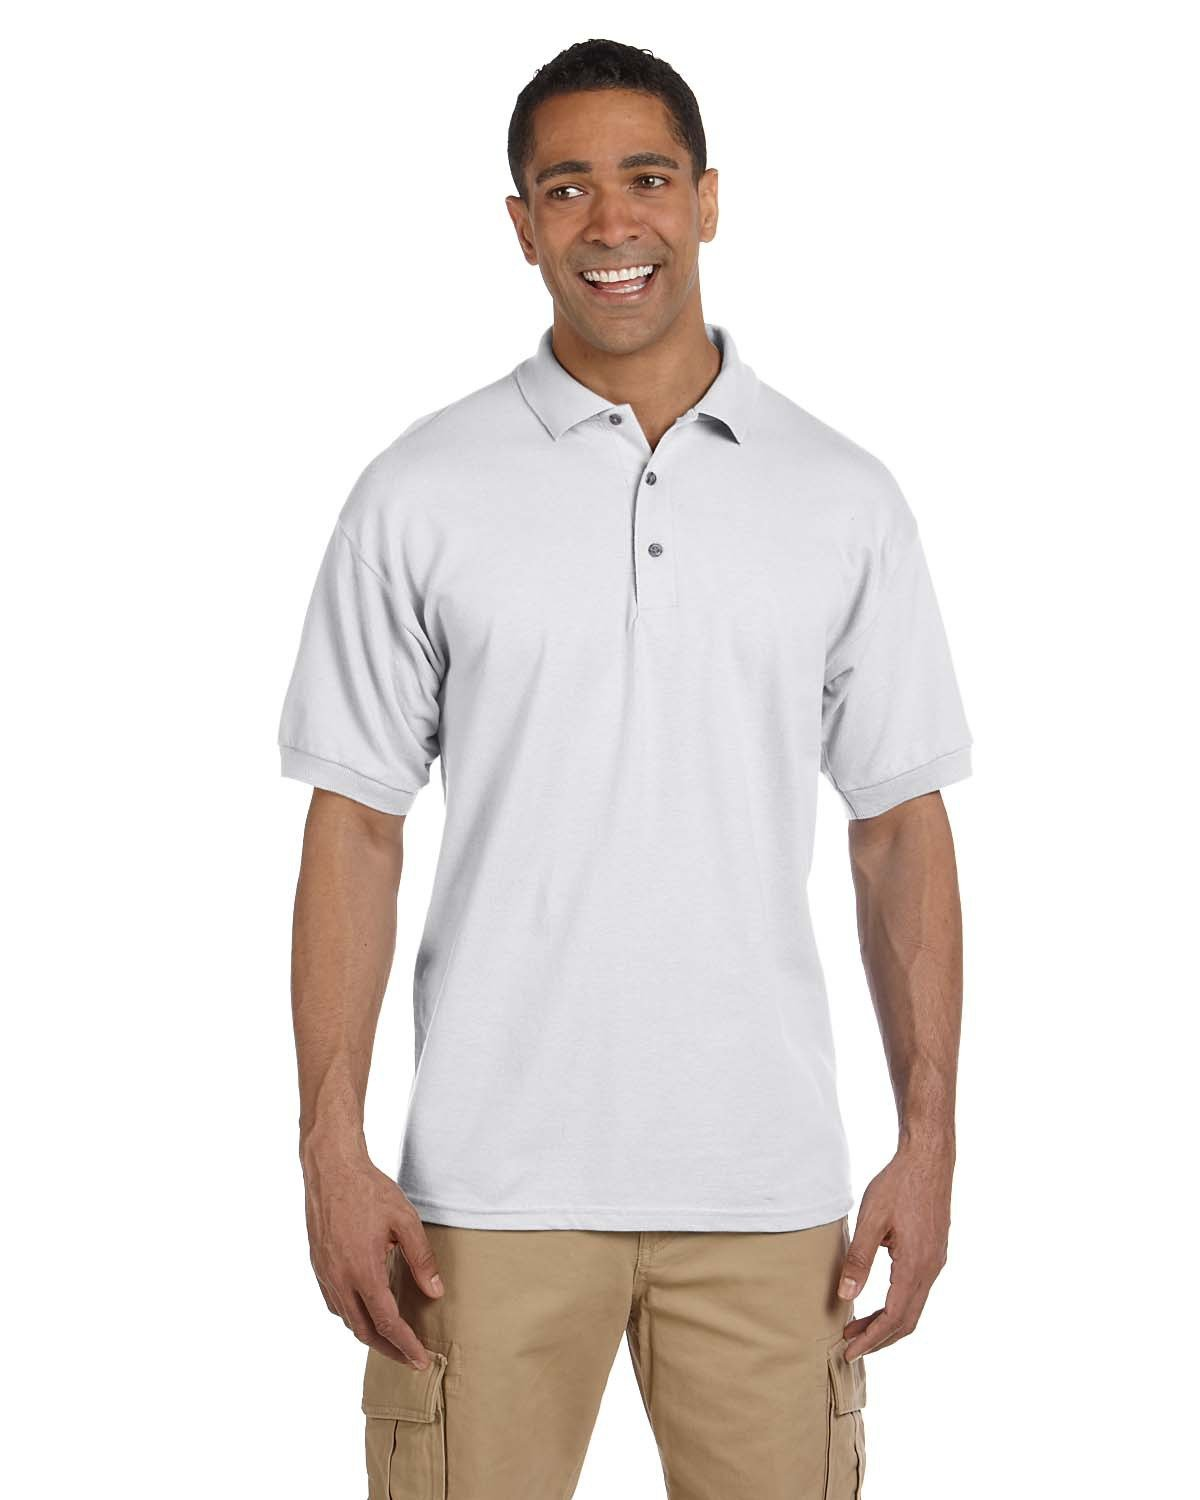 Gildan - G380 - Adult Ultra Cotton® 6.5 oz. Piqué Polo